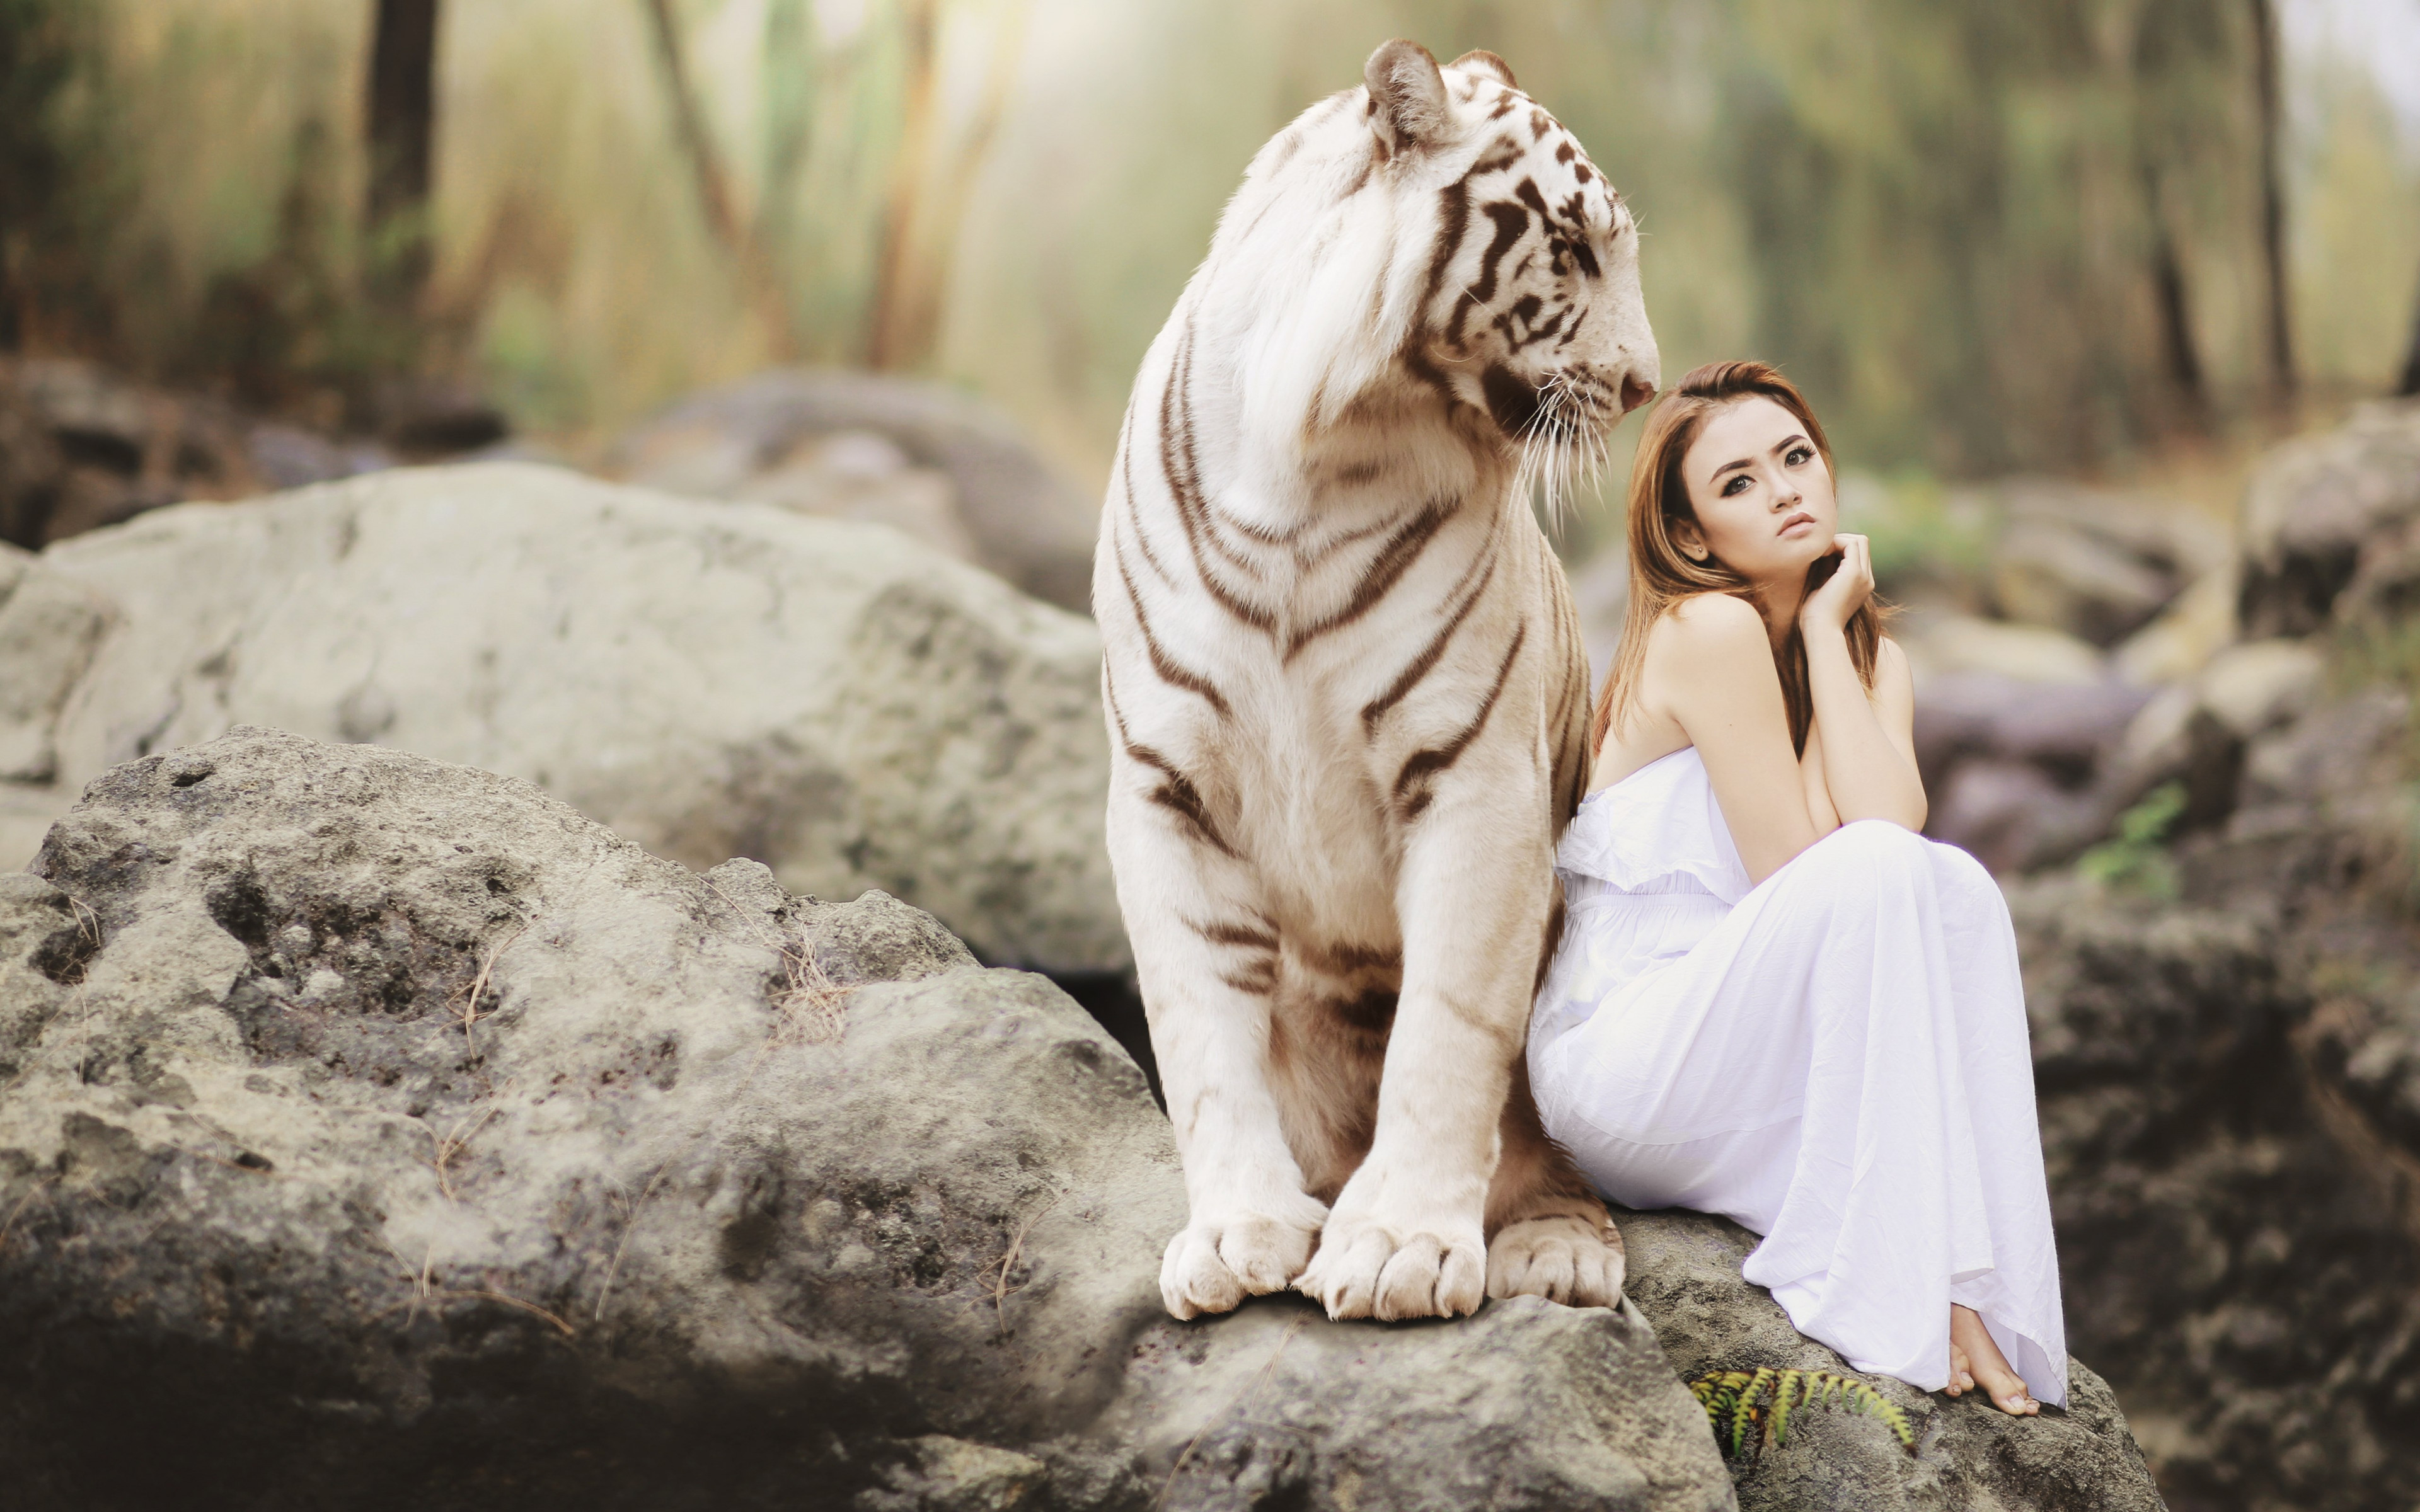 Bengal tiger and a beautiful girl | 3840x2400 wallpaper